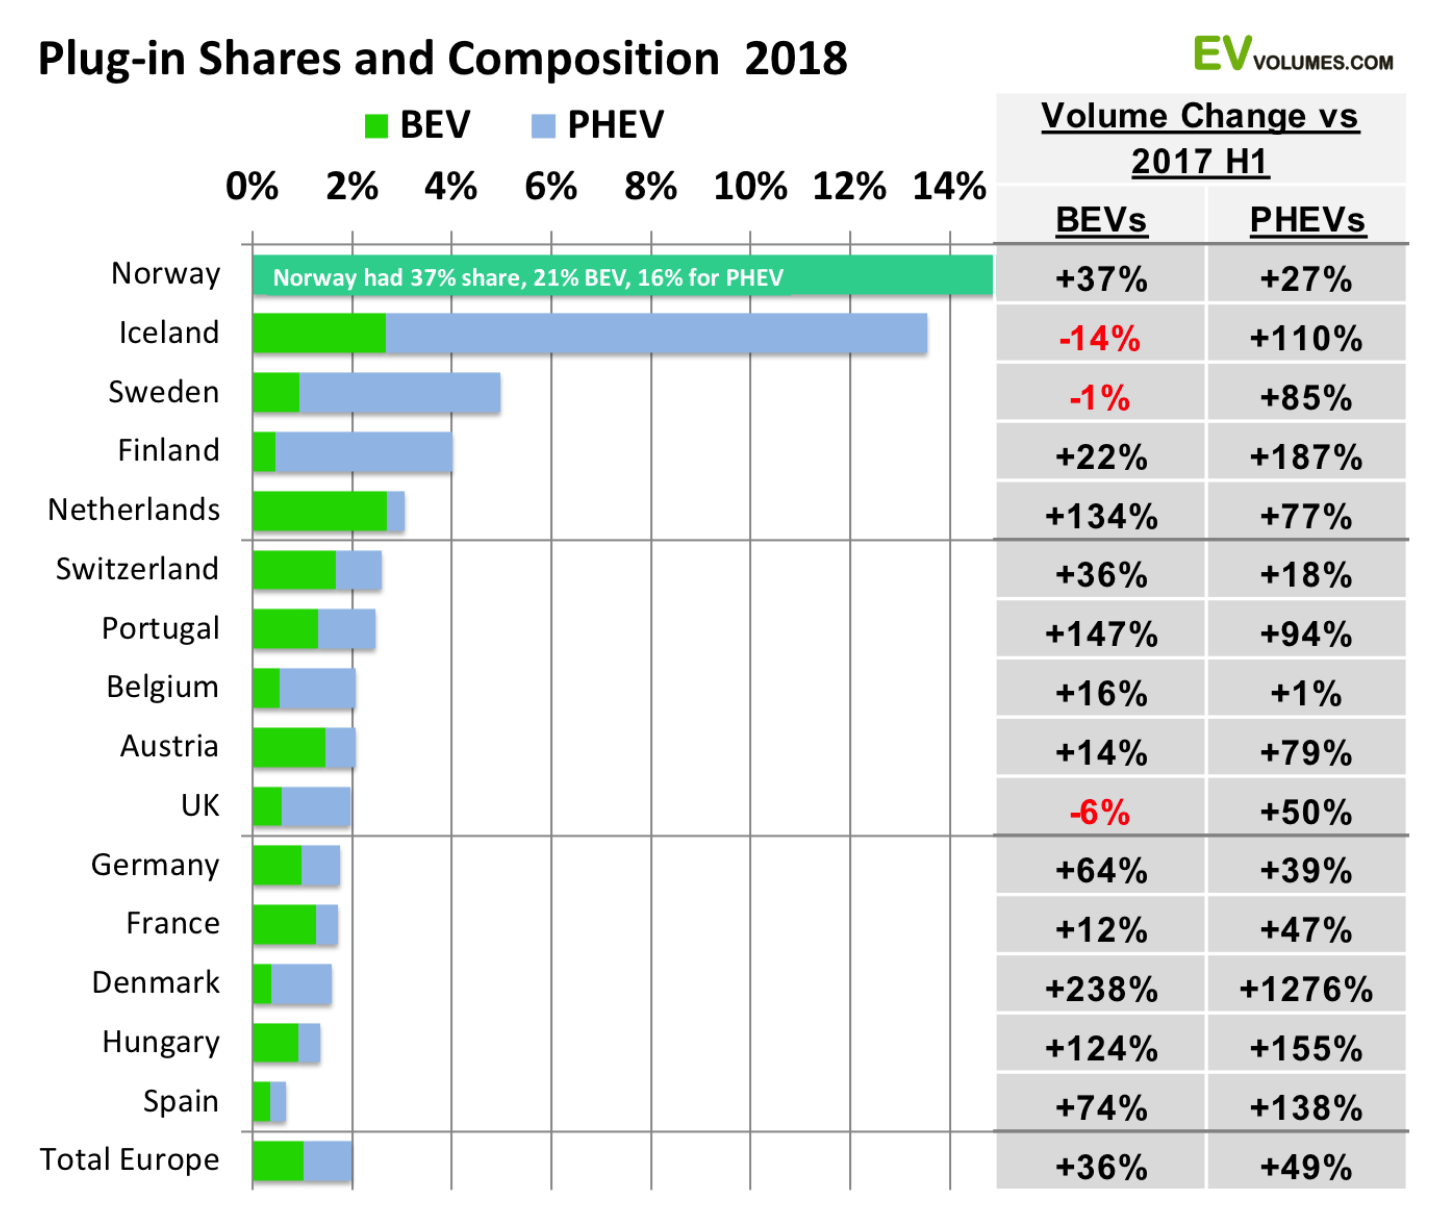 d2dab0bbd4 European Electric Car Sales Increased 42% In H1 2018 vs H1 2017 ...